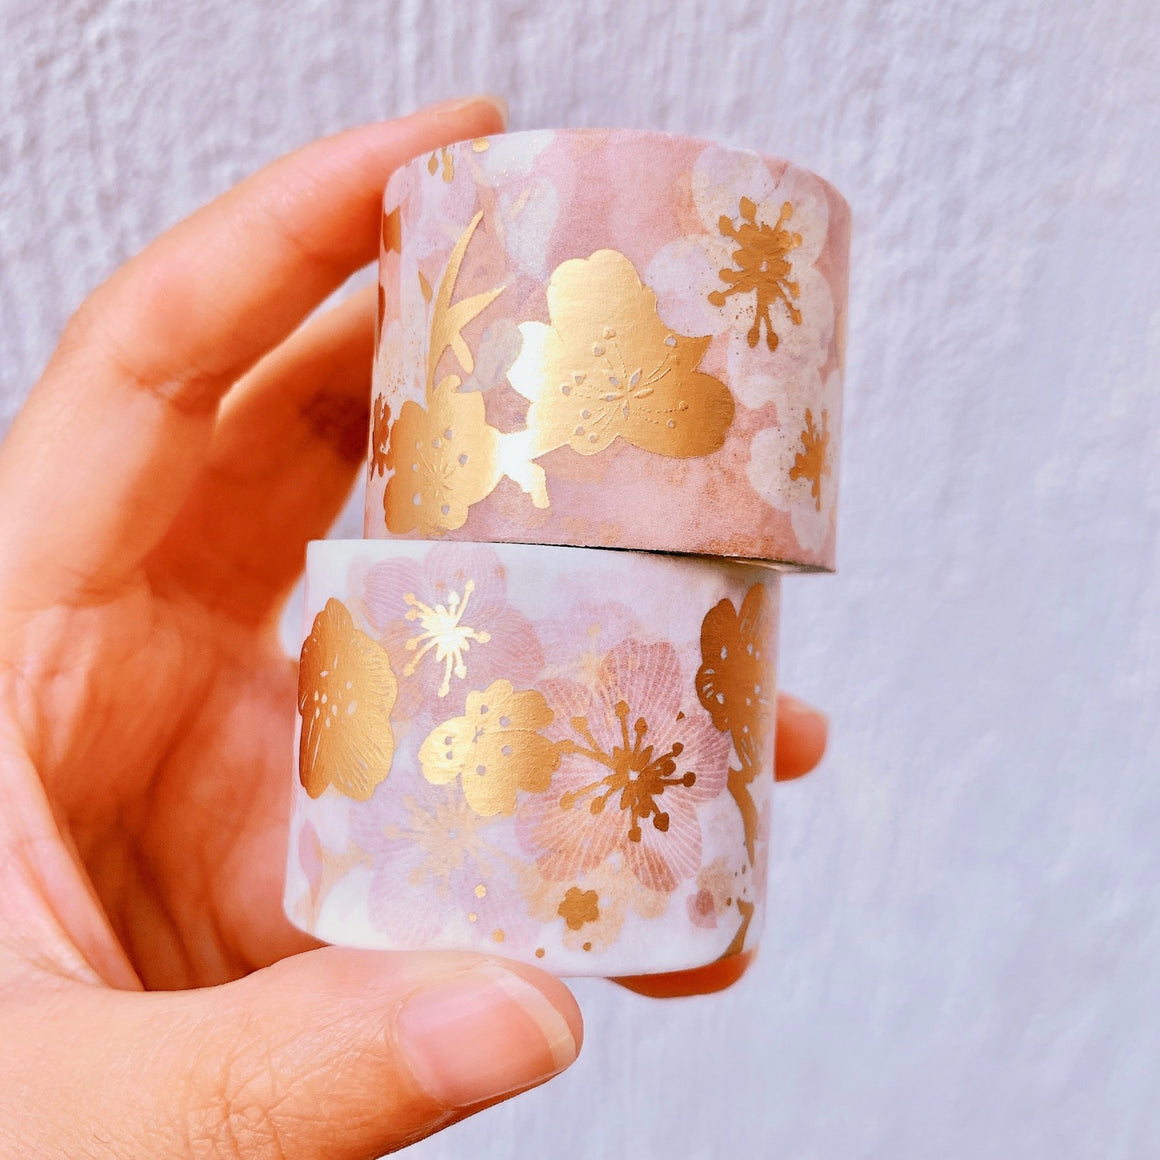 Tenohira Sakura Gilded Washi Tape Set | The Washi Tape Shop. Beautiful Washi and Decorative Tape For Bullet Journals, Gift Wrapping, Planner Decoration and DIY Projects